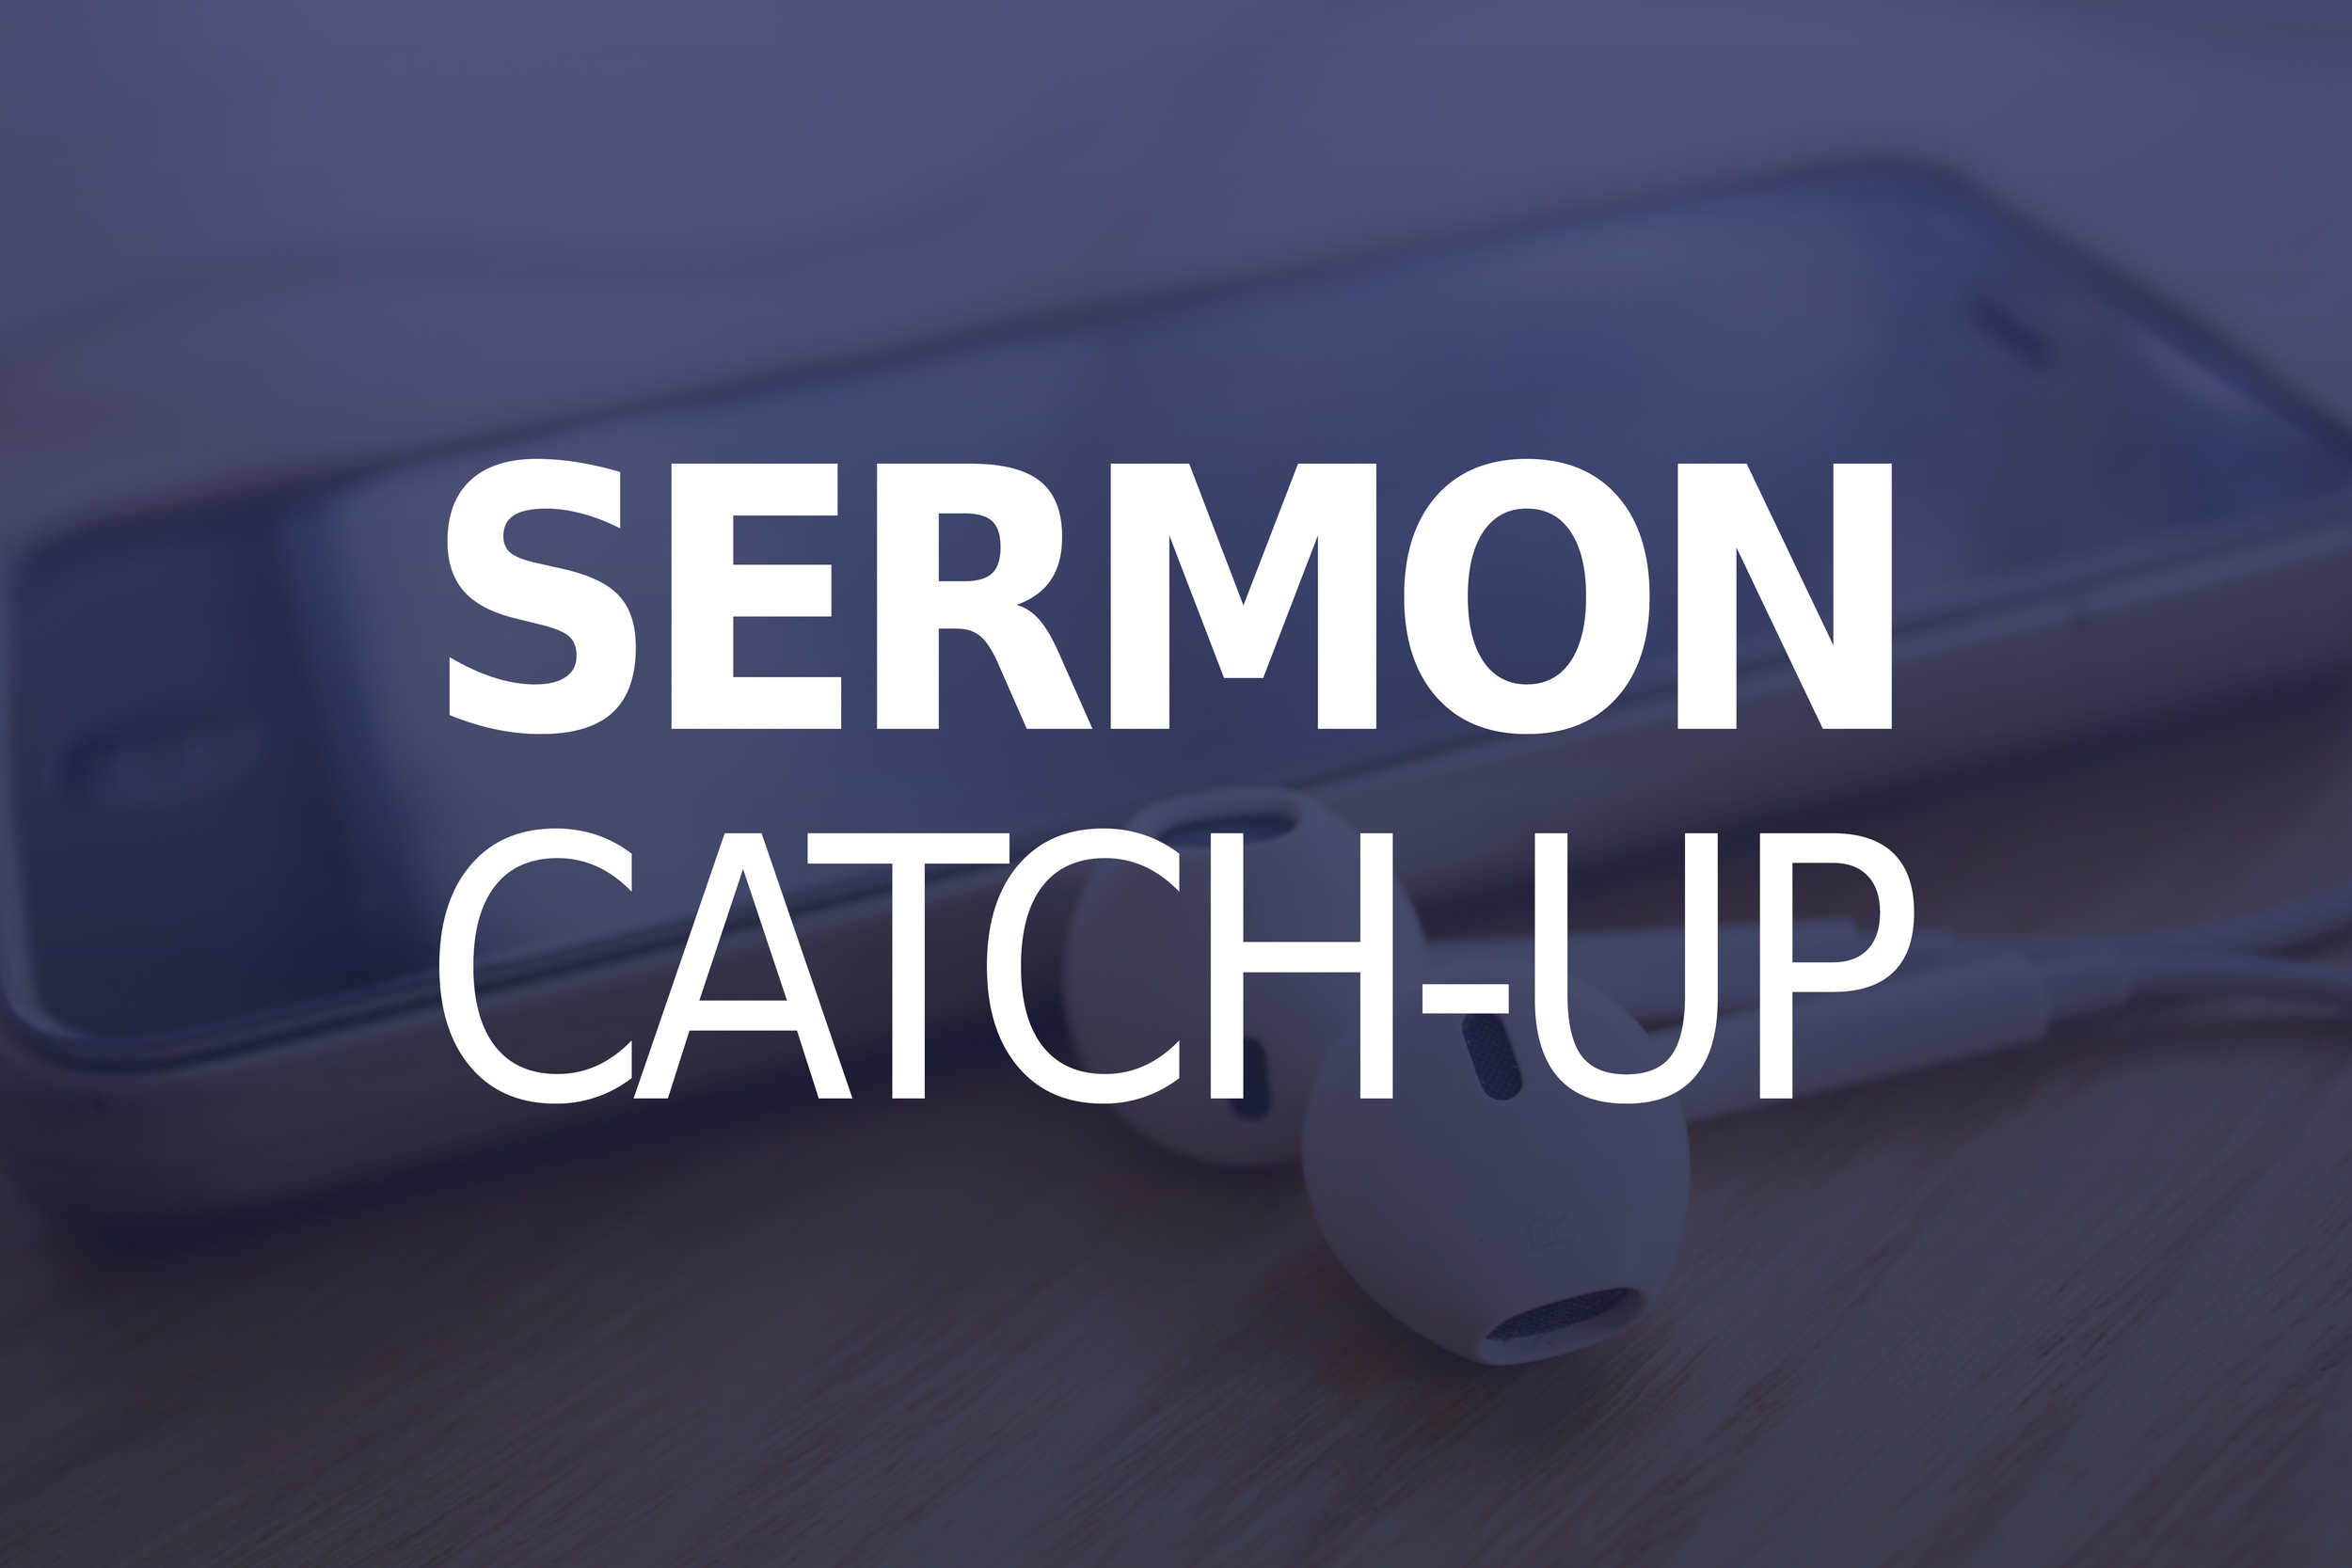 Sermon-catch-up.jpg